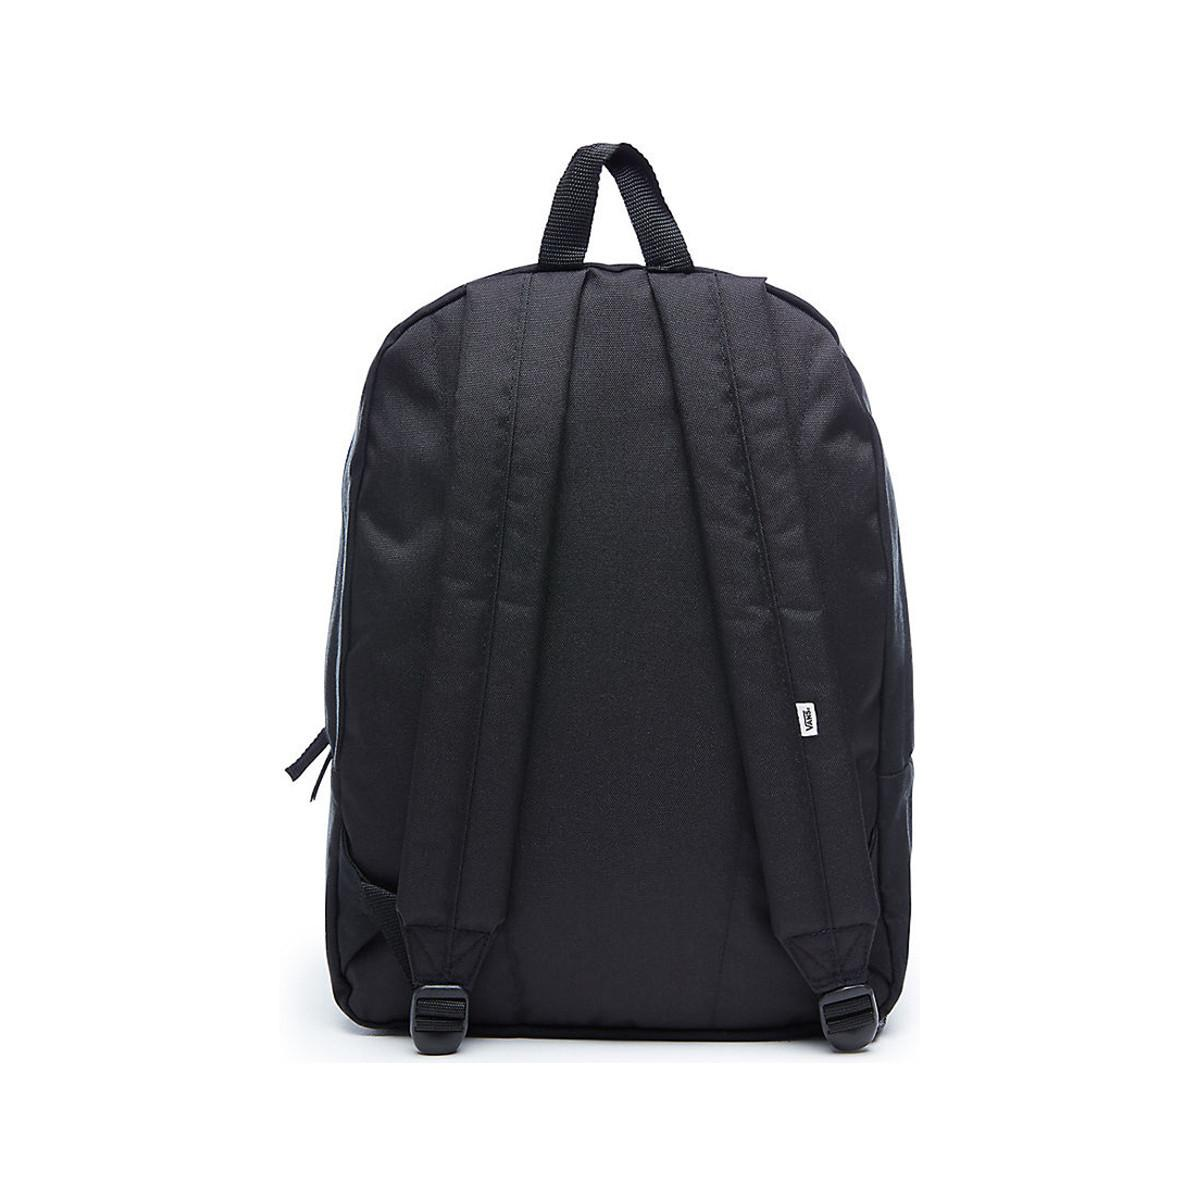 7fc1b8ebfe Vans Realm Classic Backpack - Black Cat Women s Backpack In Black in ...